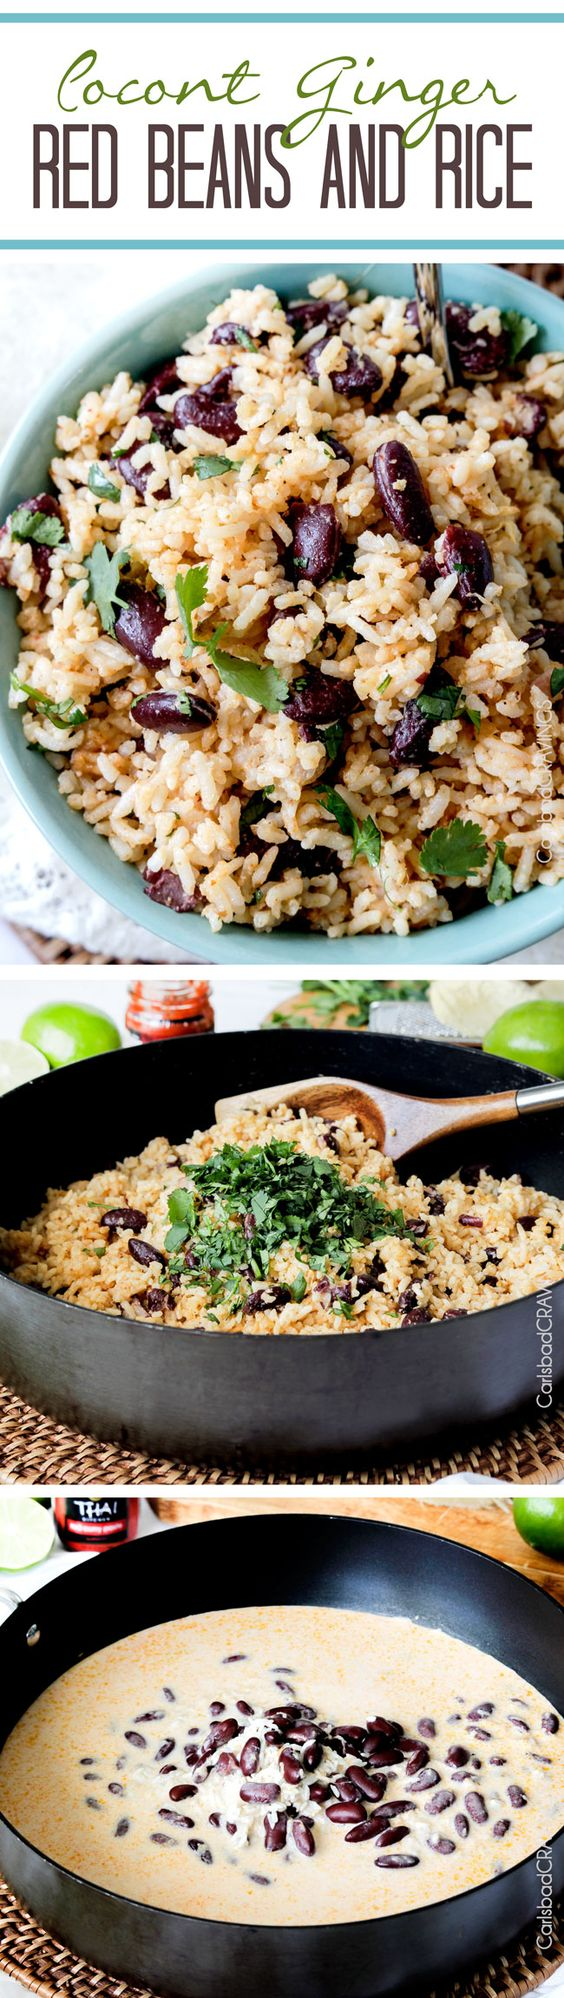 tantalizing Coconut Ginger Red Beans and Rice swirled with cilantro ...